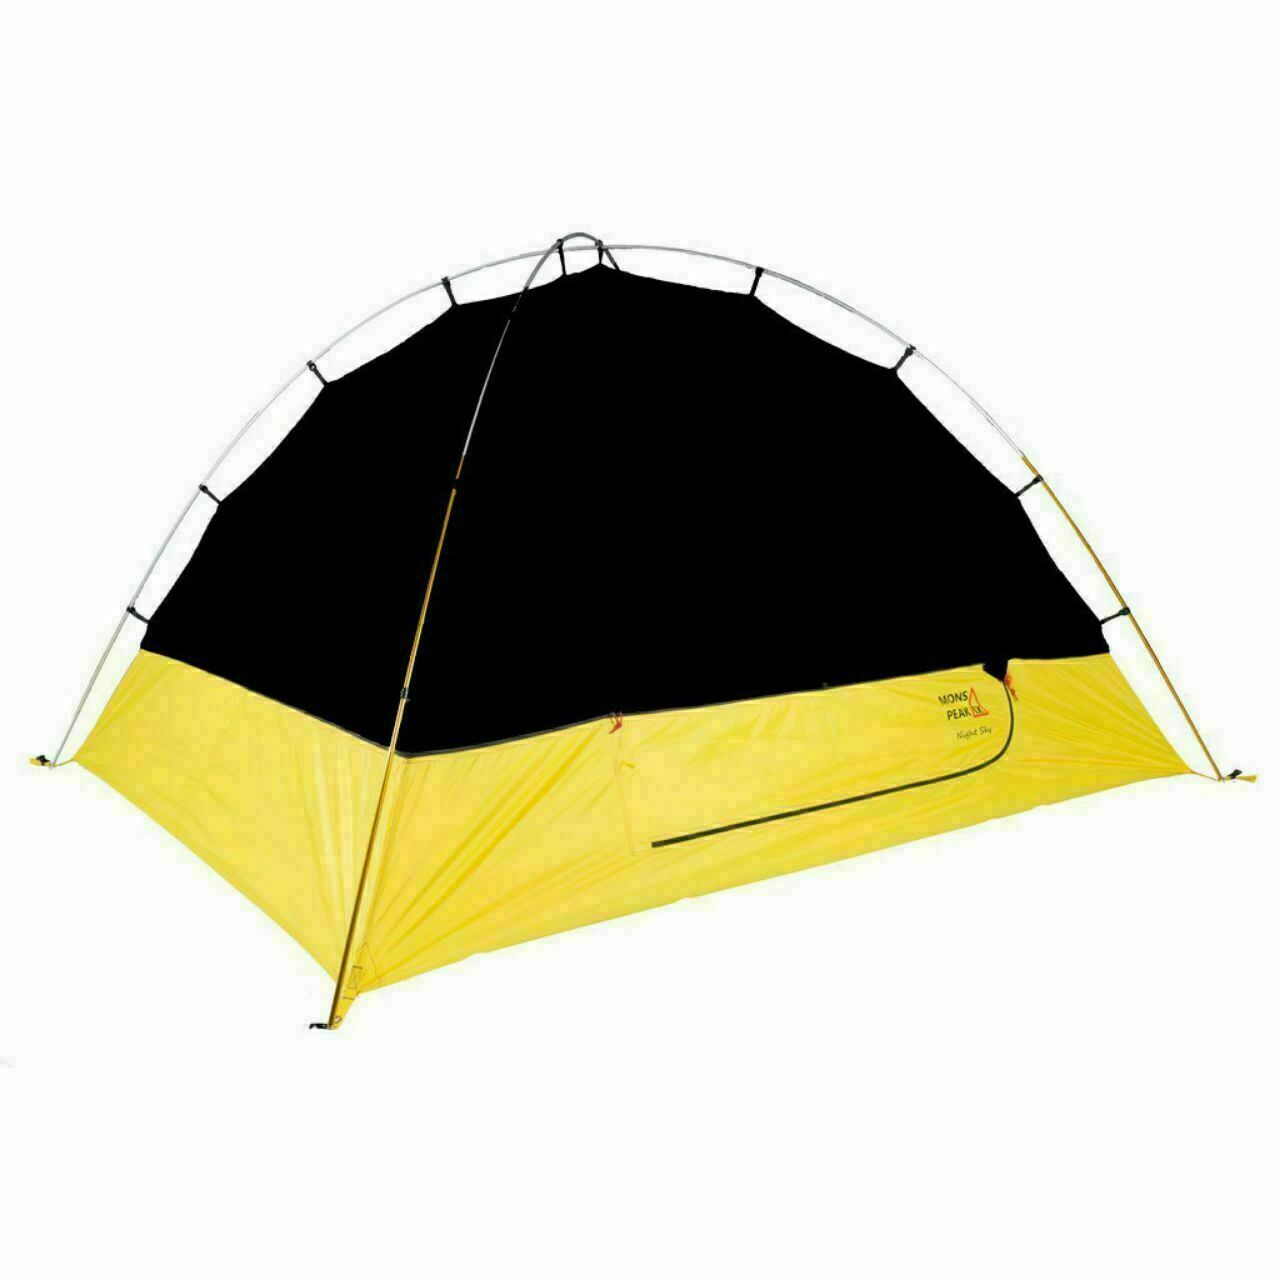 Mons Peak IX Night cielo Replaceuominit Base Unit tent 4 Person 4P base